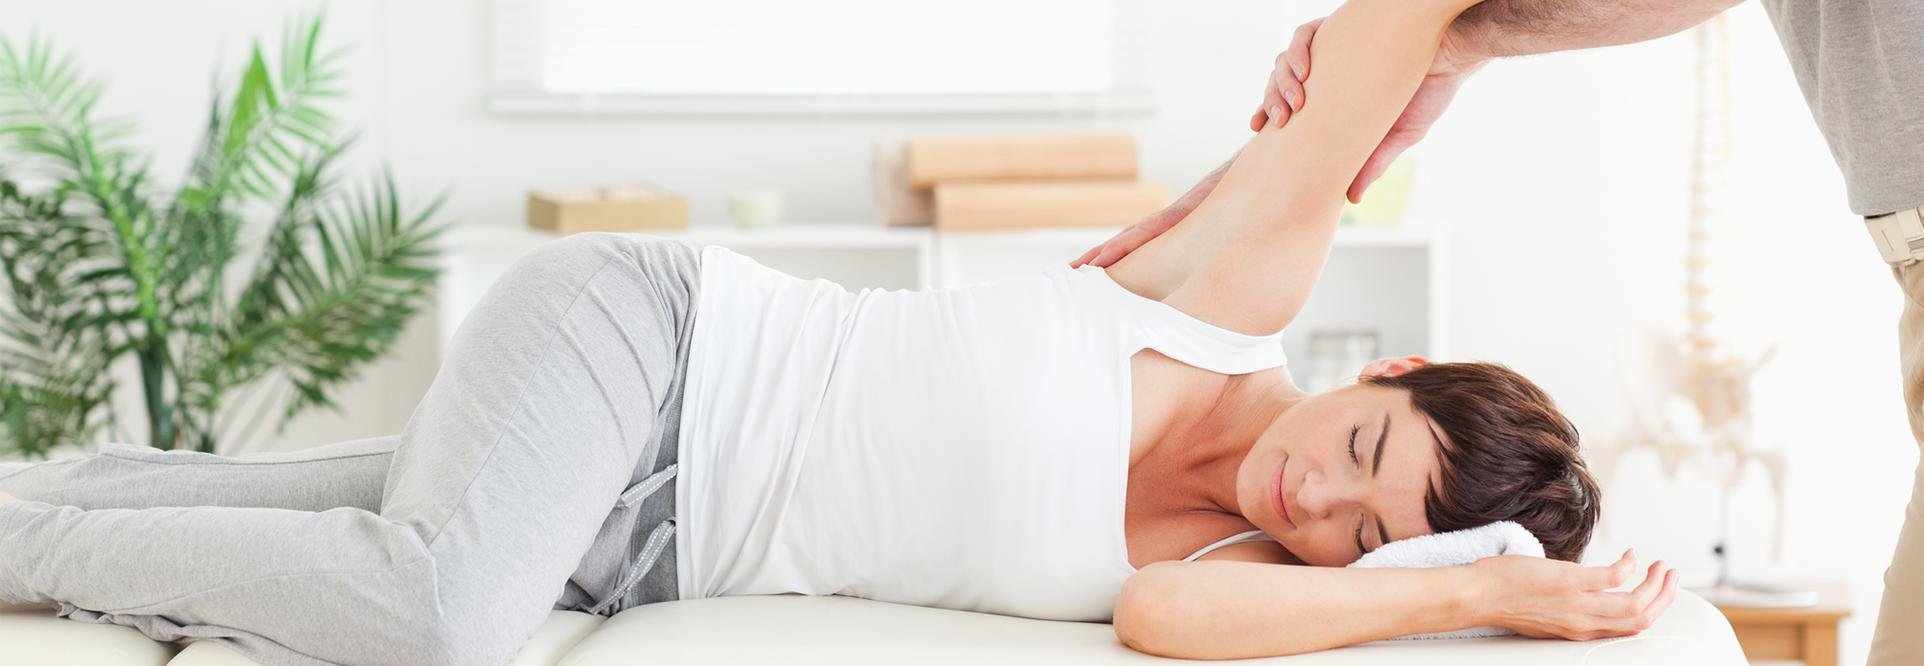 woman getting adjusted by a chiropractor